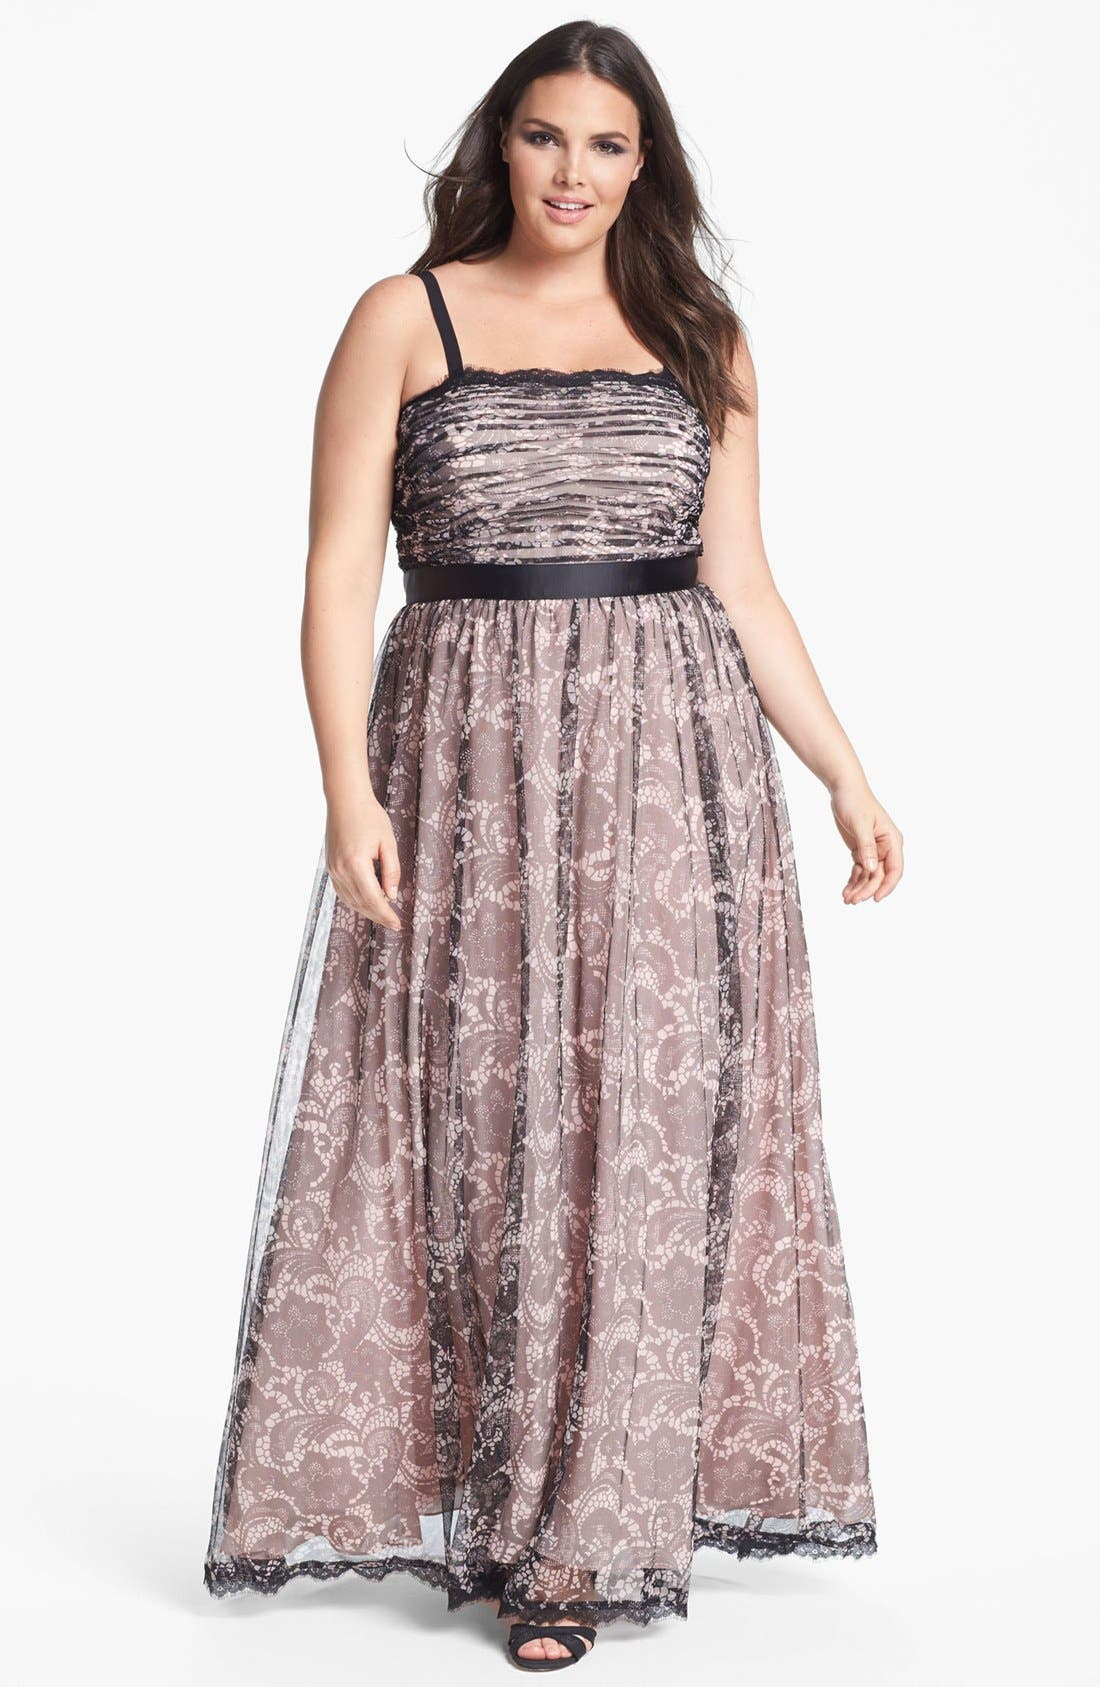 Alternate Image 1 Selected - Adrianna Papell Lace Print Tulle Gown (Plus Size)